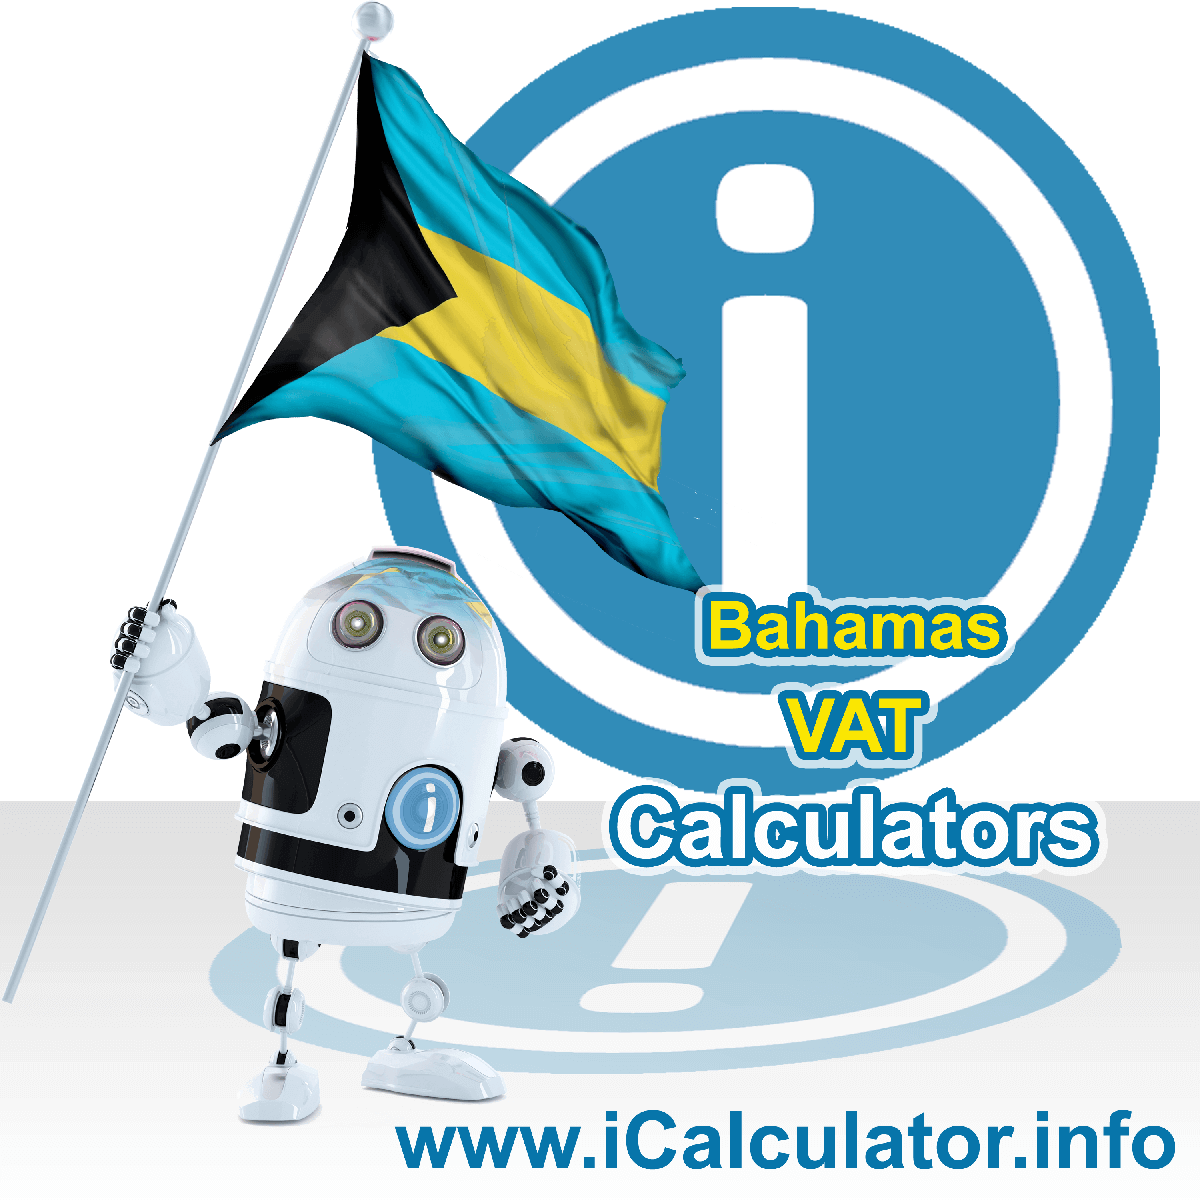 Bahamas VAT Calculator. This image shows the Bahamas flag and information relating to the VAT formula used for calculating Value Added Tax in Bahamas using the Bahamas VAT Calculator in 2021